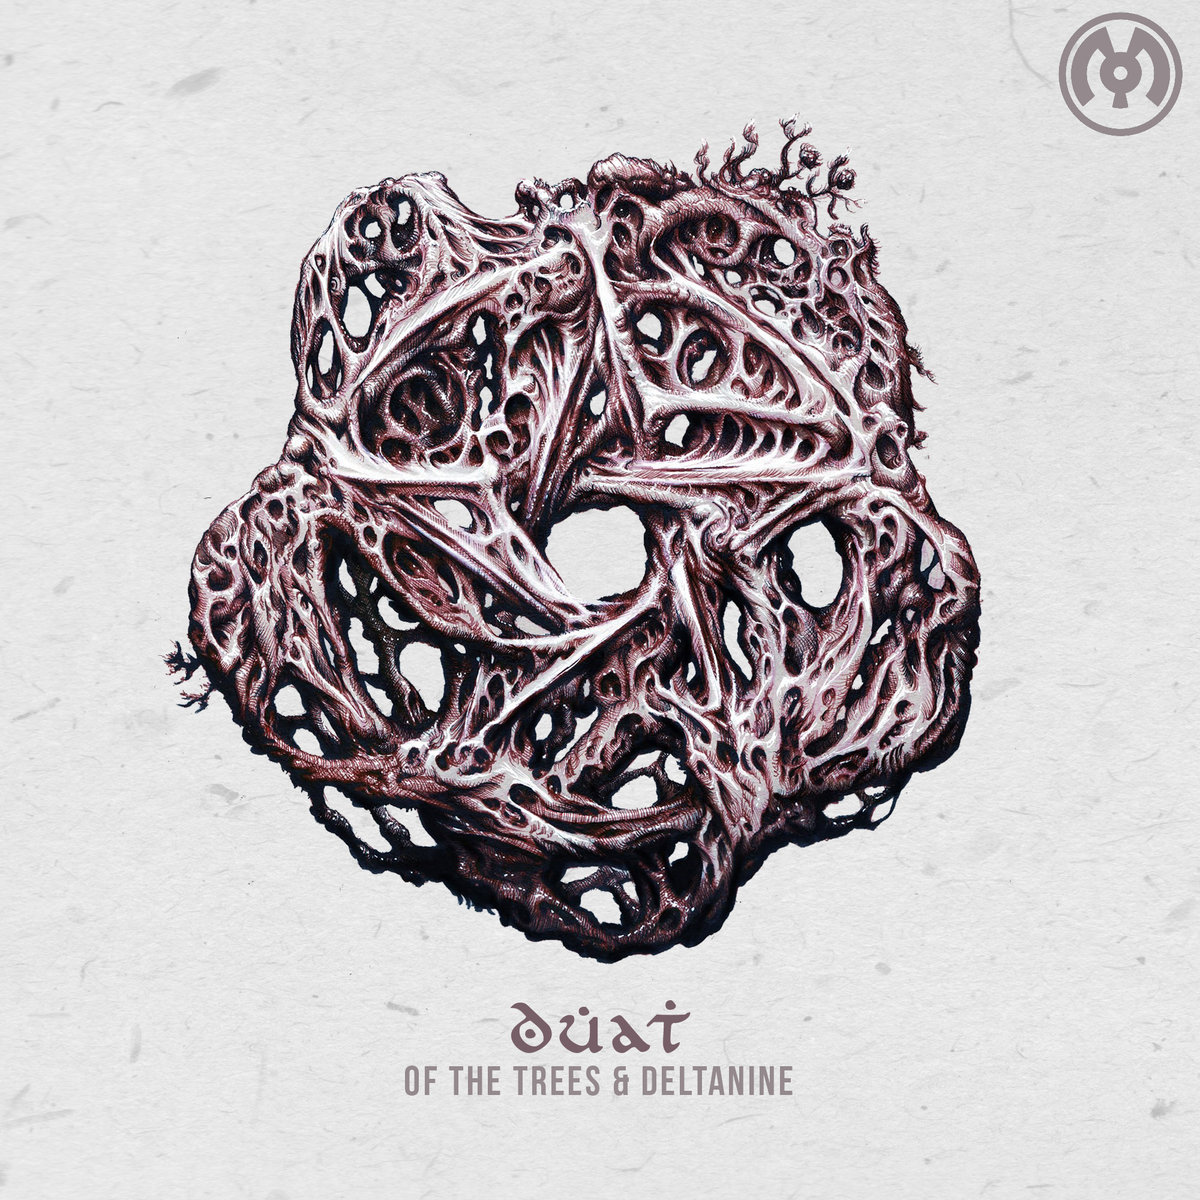 Of the Trees & DELTAnine - Duat